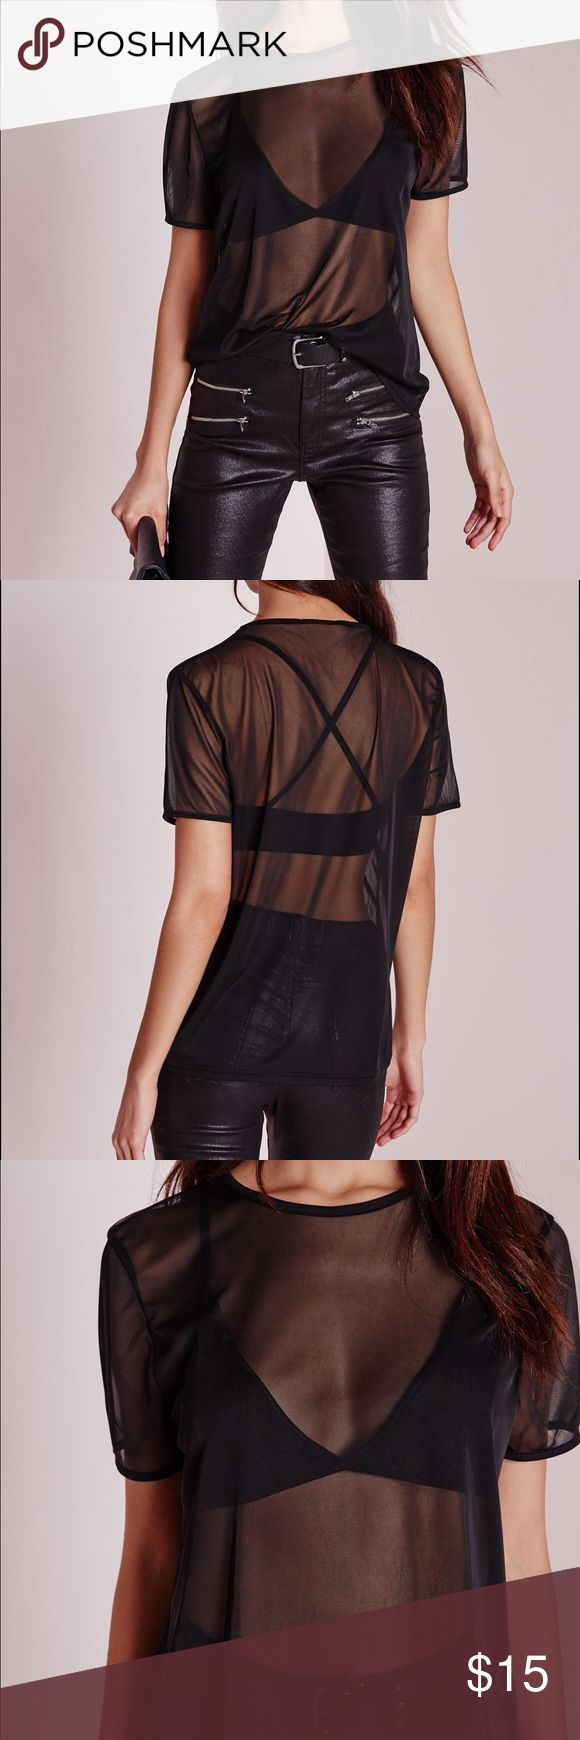 Missguided mesh tshirt Super soft, fine mesh tshirt that has NEVER been worn and still has tags attached Missguided Tops